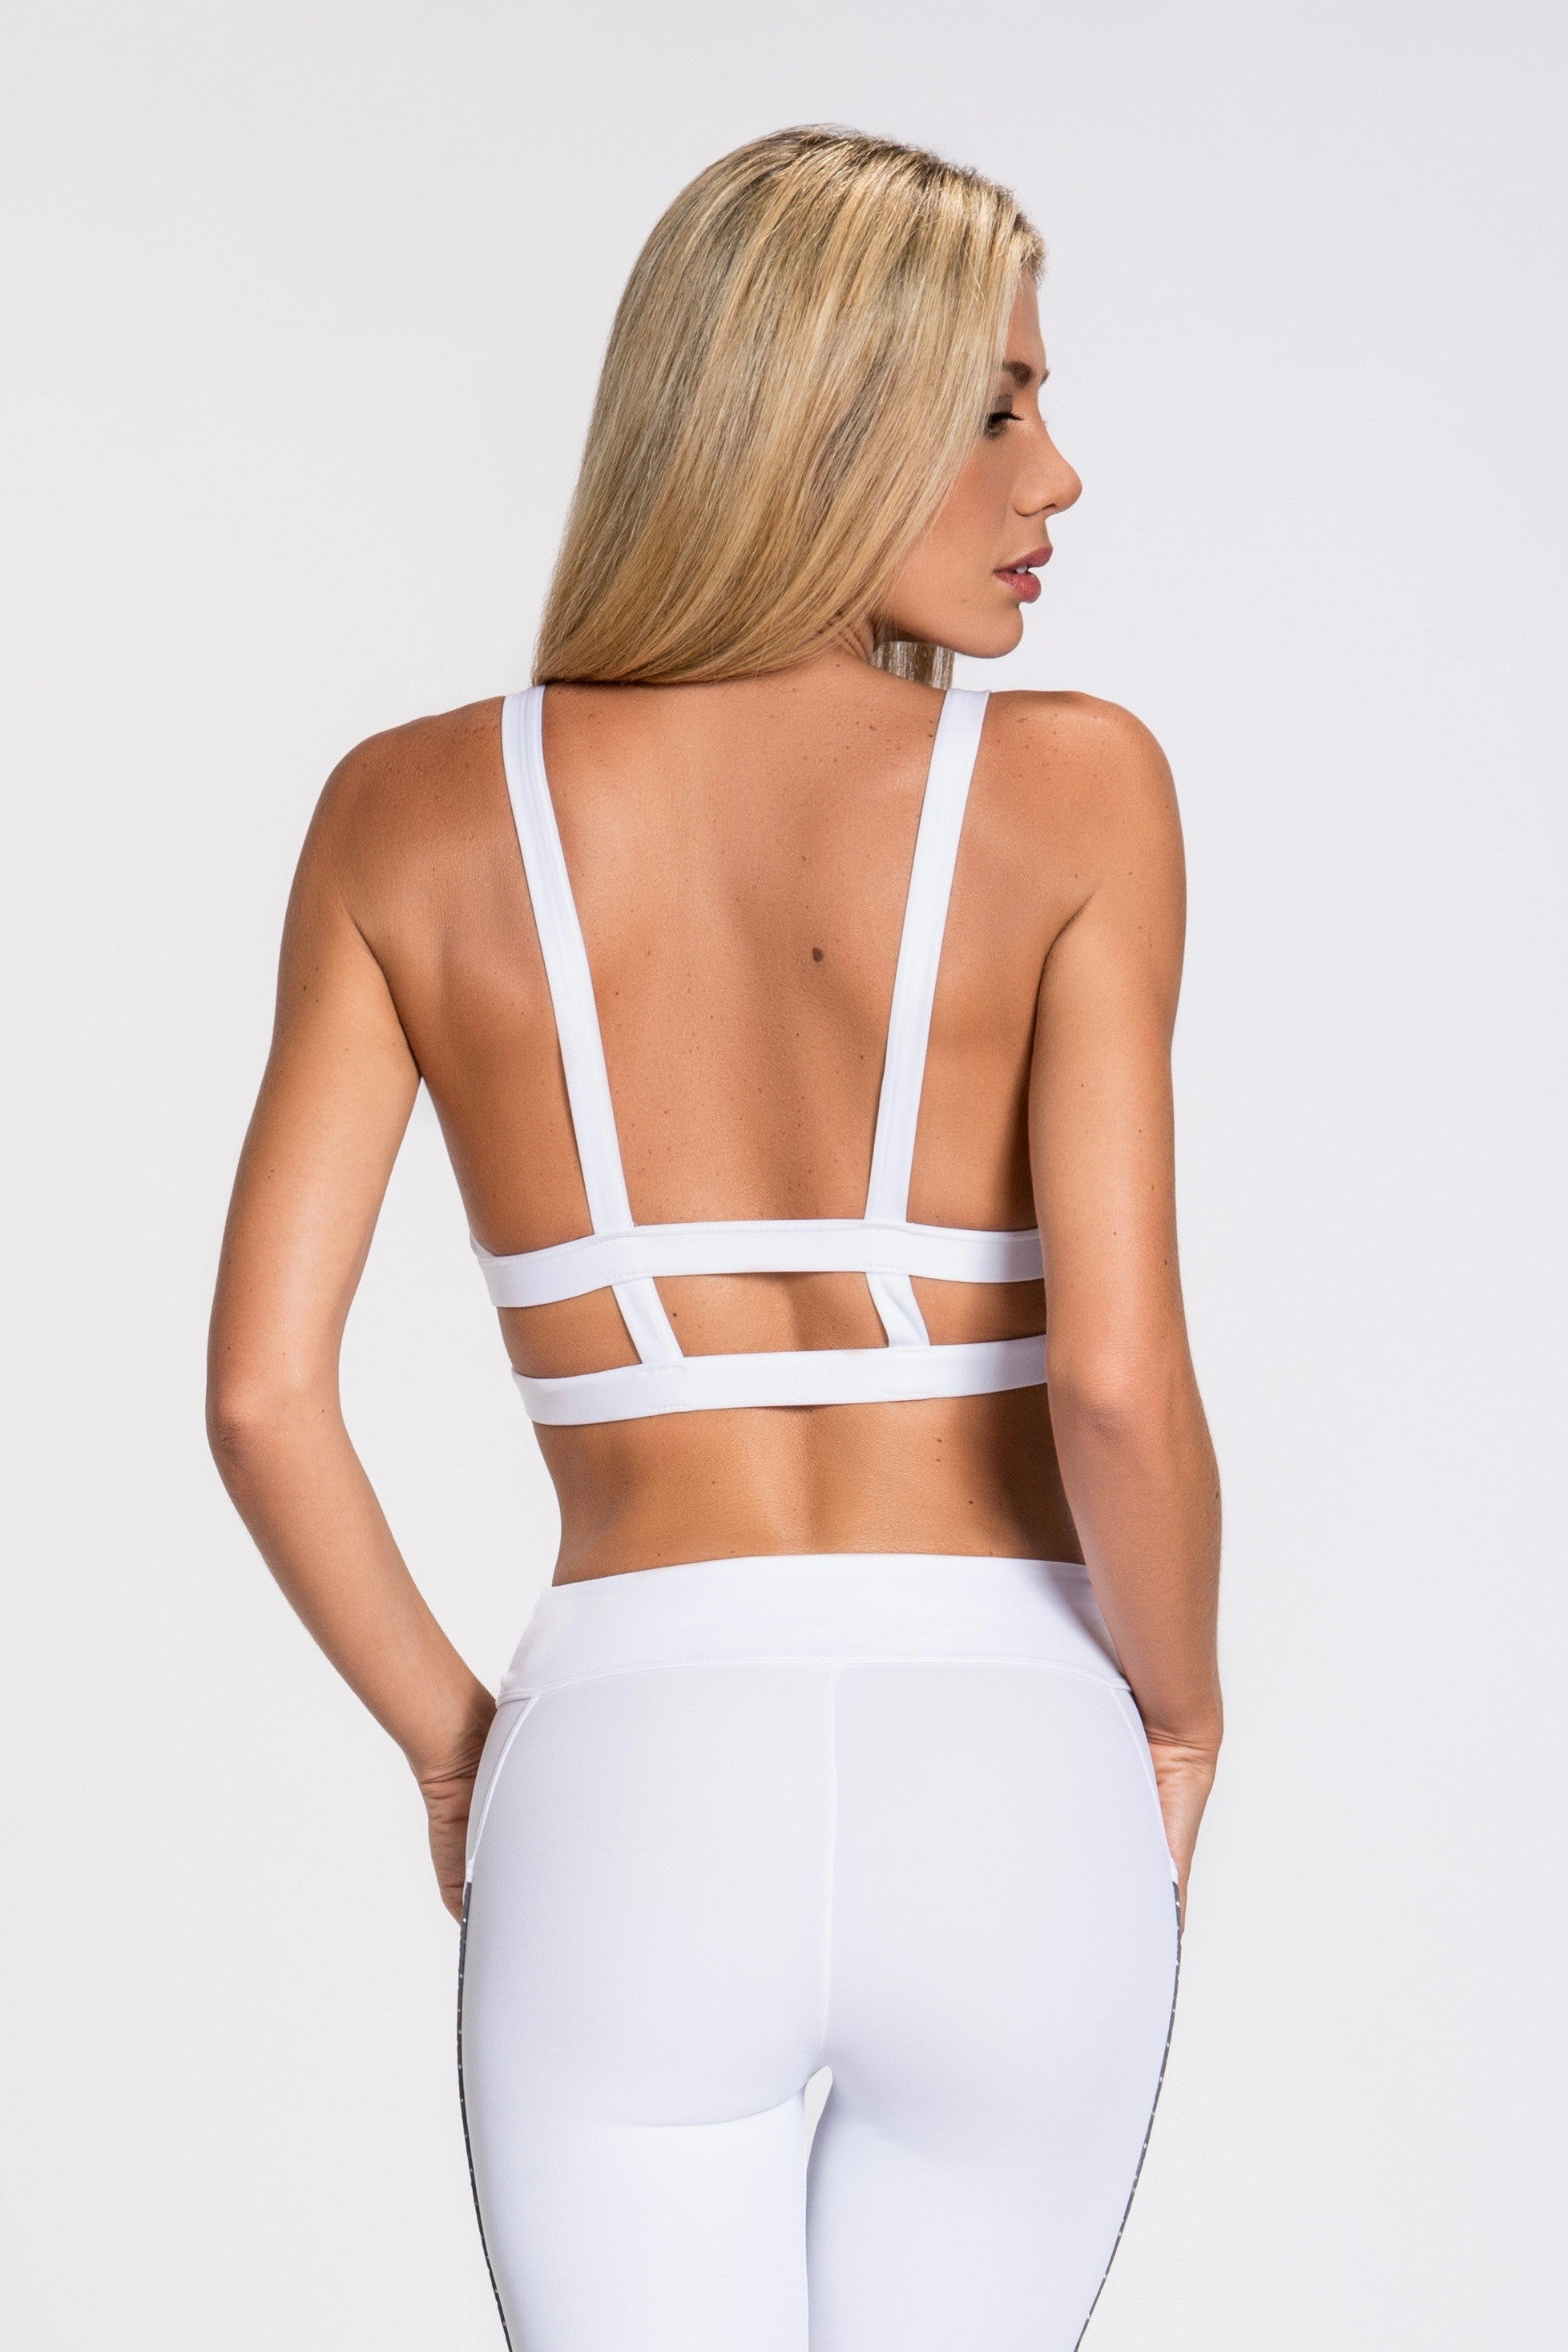 Elektra Caged Back Bra Top- White/Silver/Gray